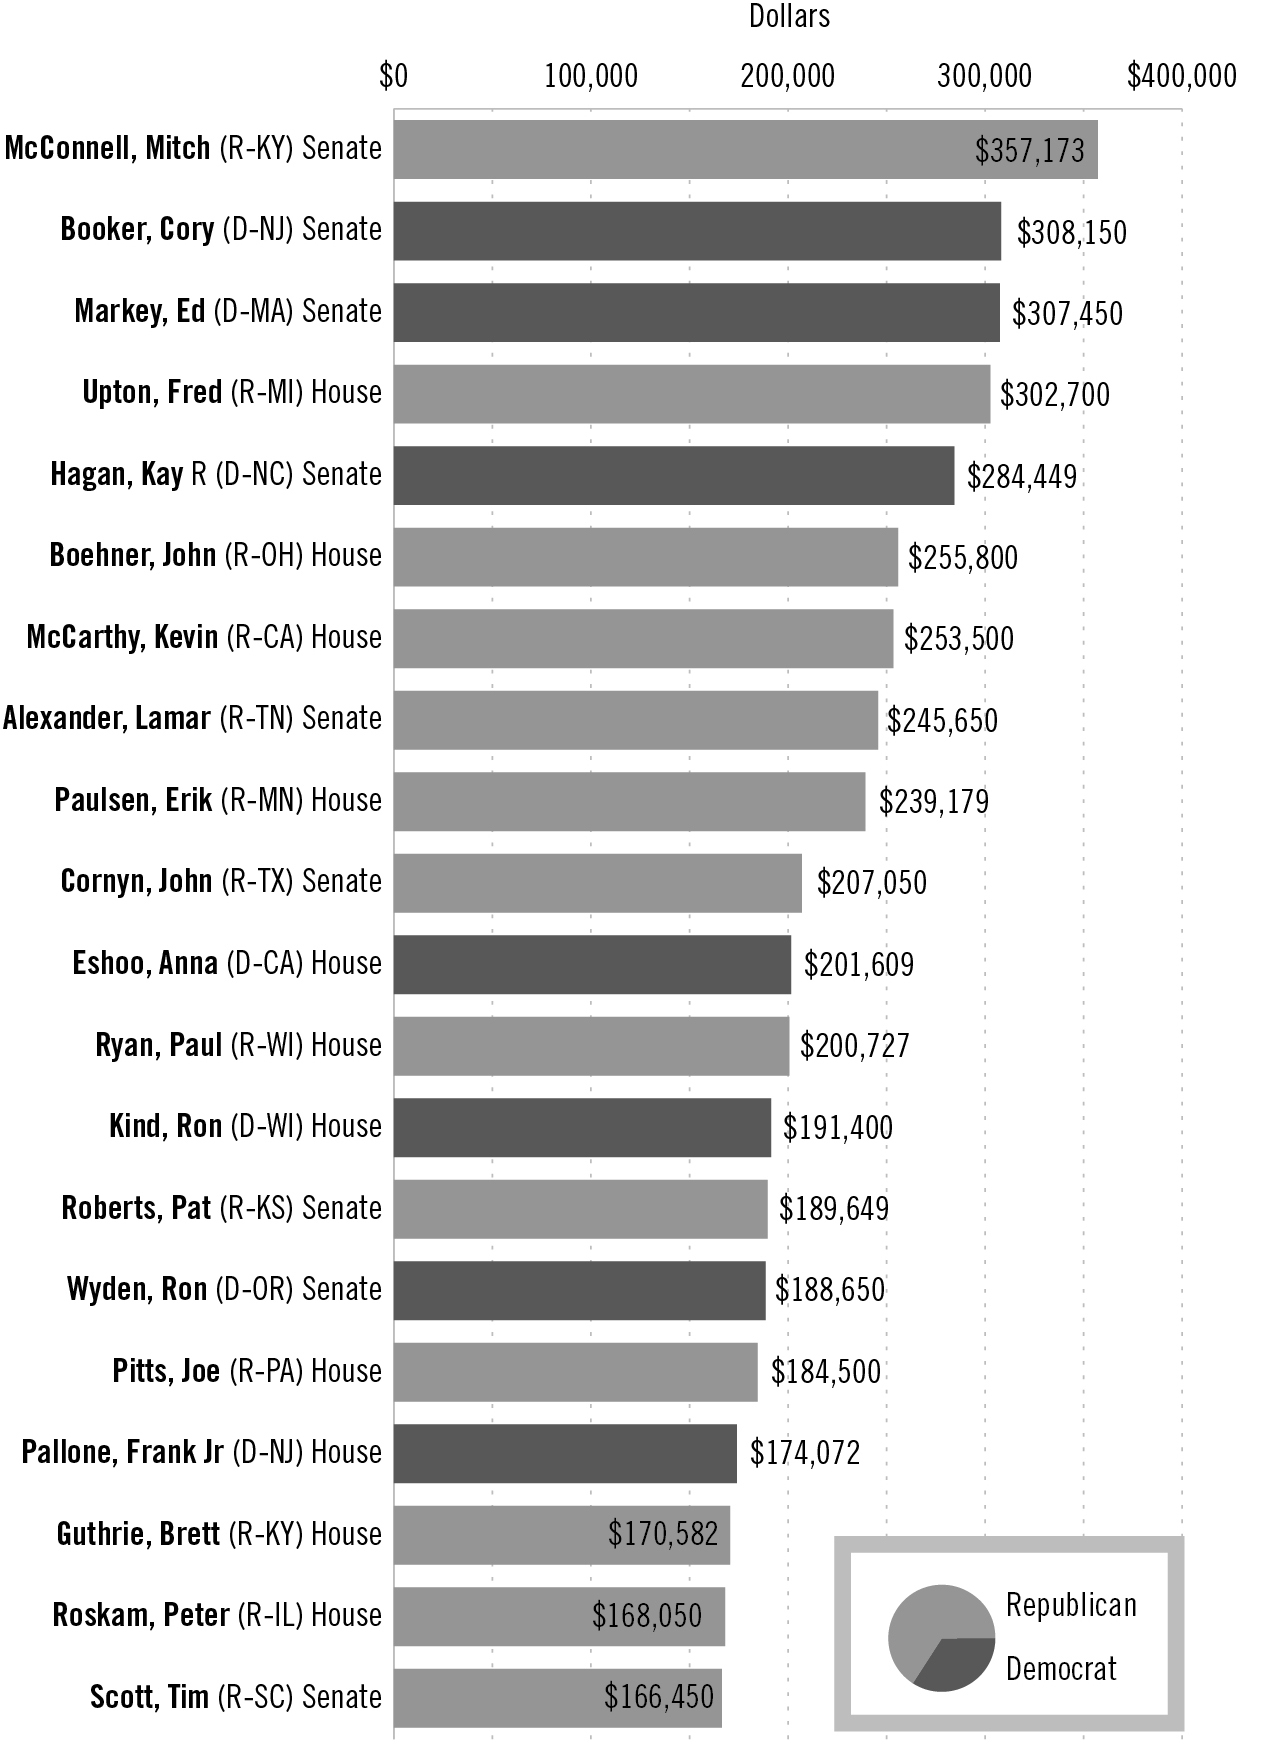 Top 20 recipients of pharmaecutical and health sector contributions <br><strong>Source:</strong> Center for Responsive Politics (opensecrets.org) <br><strong>Methodology:</strong> The numbers above are based on contributions from PACs and individuals giving $200 or more. All donations took place during the 2013–2014 election cycle and were released by the Federal Election Commission on March 09, 2015.